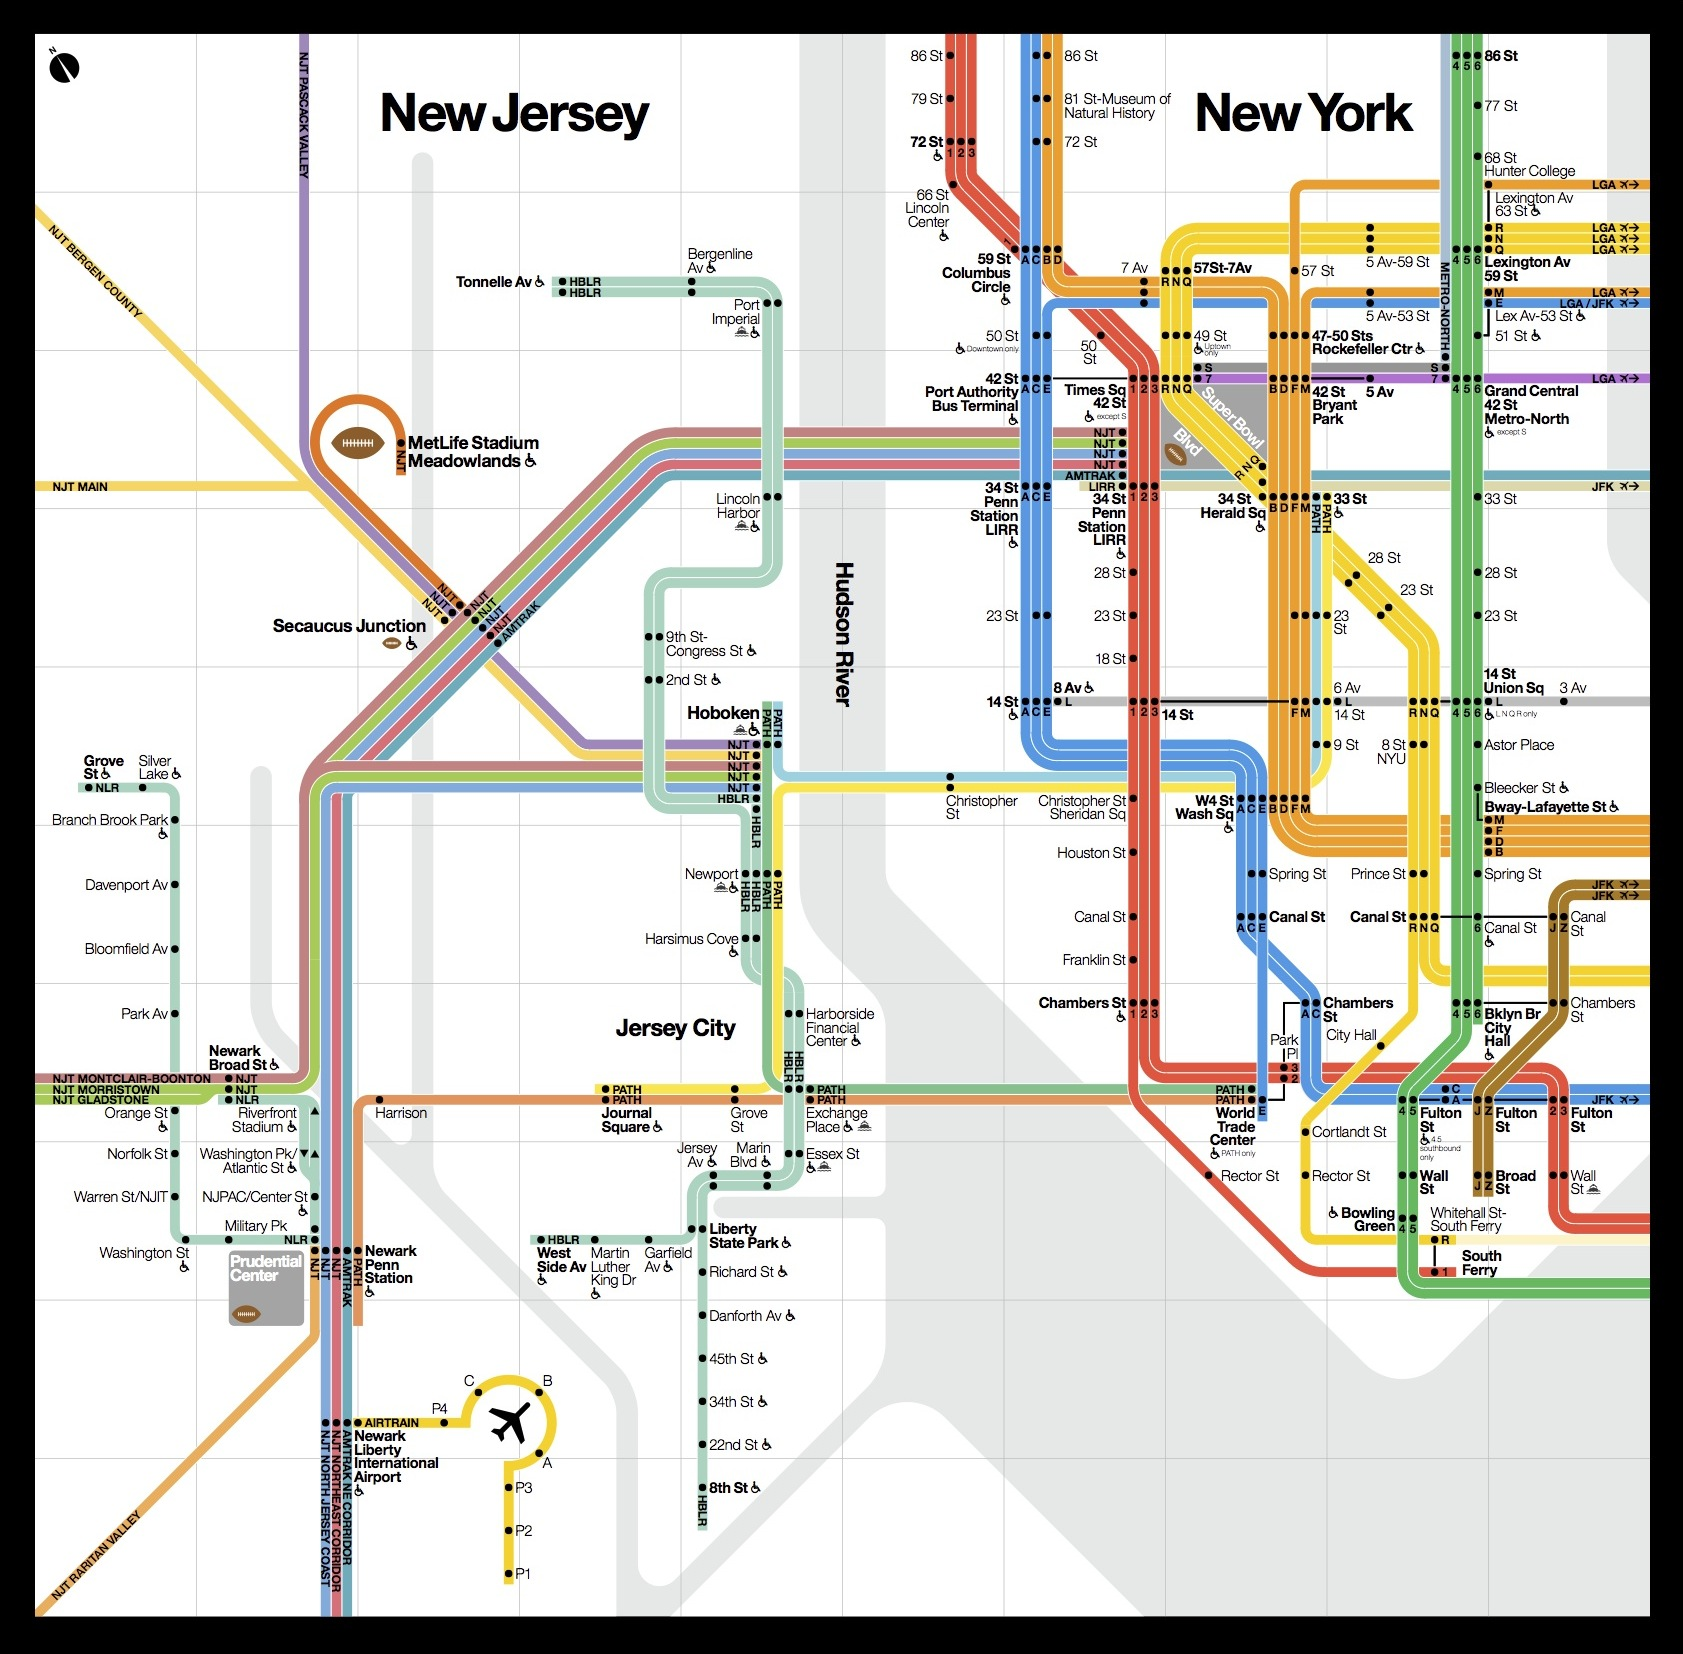 A beautiful new public transit map shows how New York and